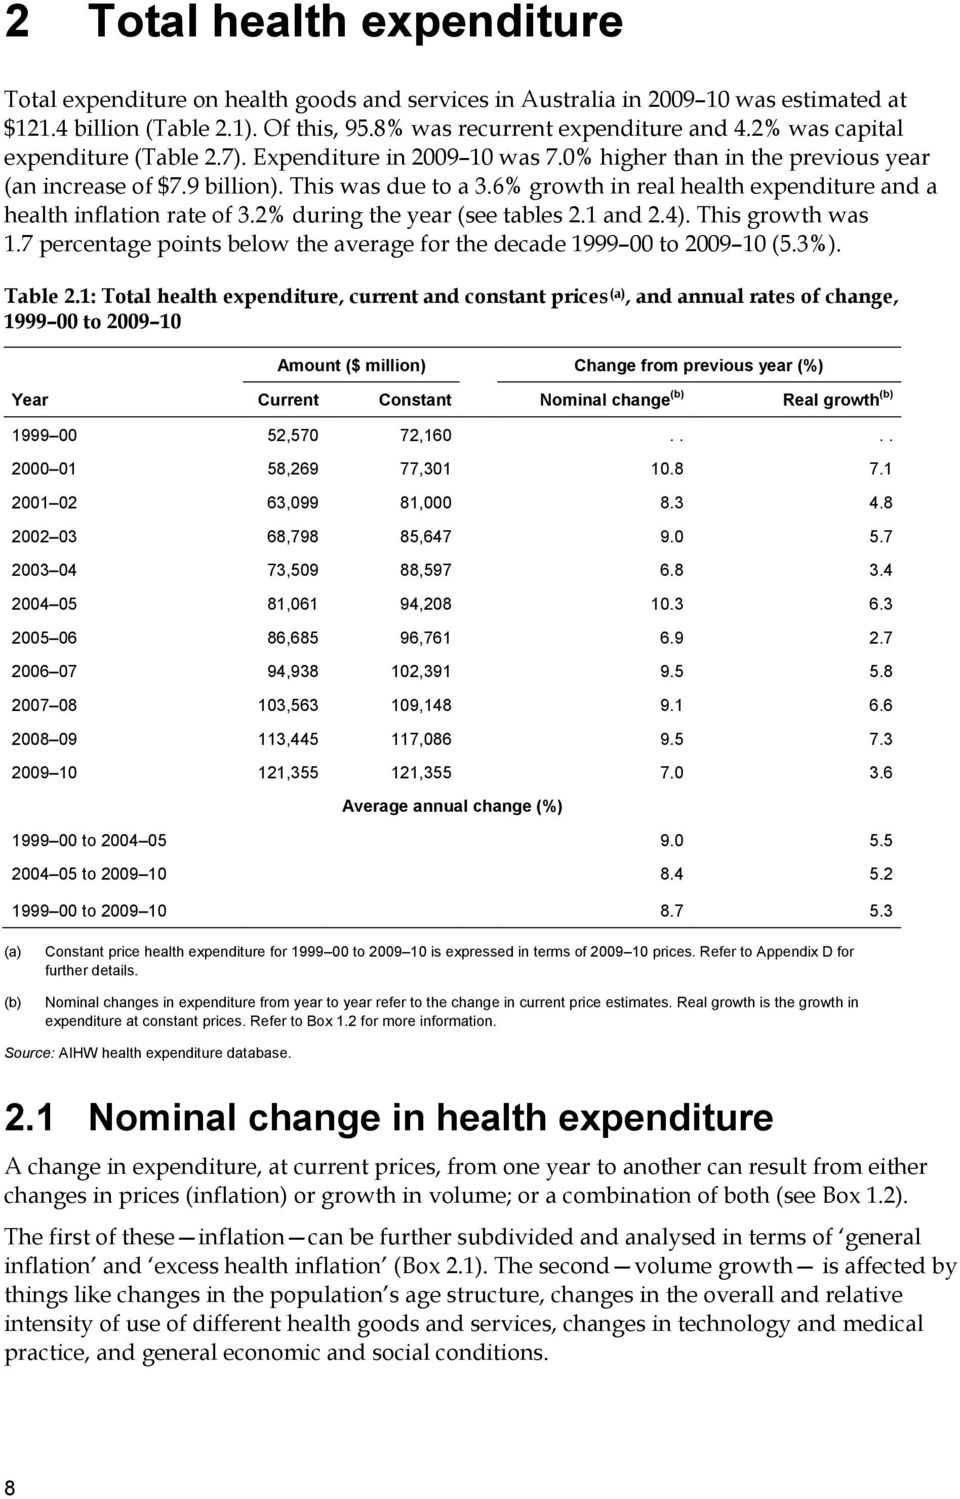 6% growth in real health expenditure and a health inflation rate of 3.2% during the year (see tables 2.1 and 2.4). This growth was 1.